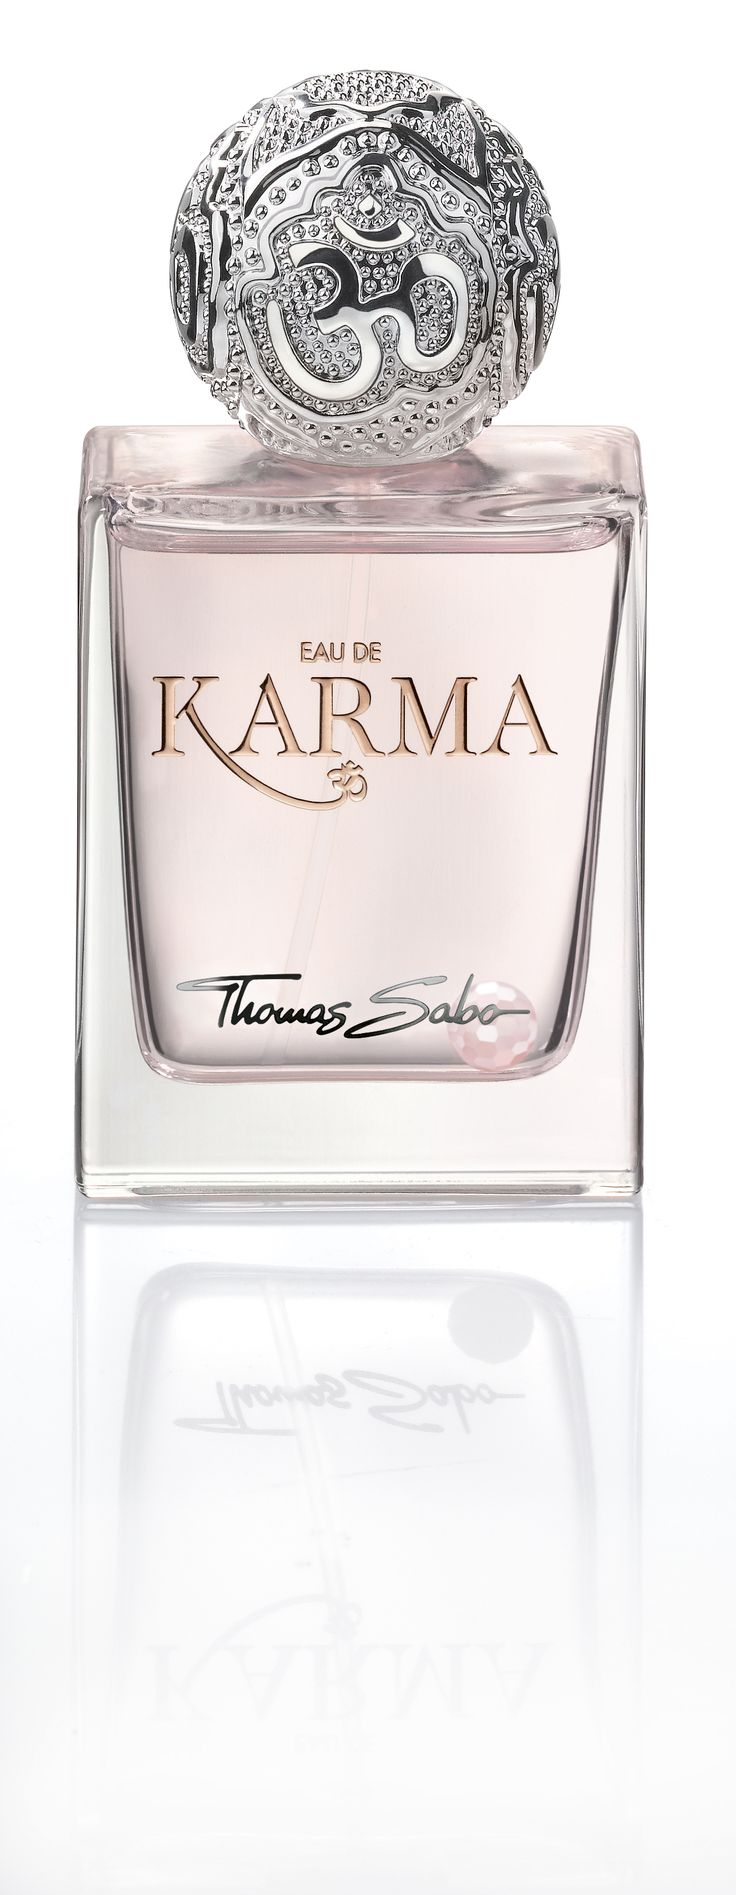 "Karma in a bottle. Discover our new fragrance ""Eau de Karma"""